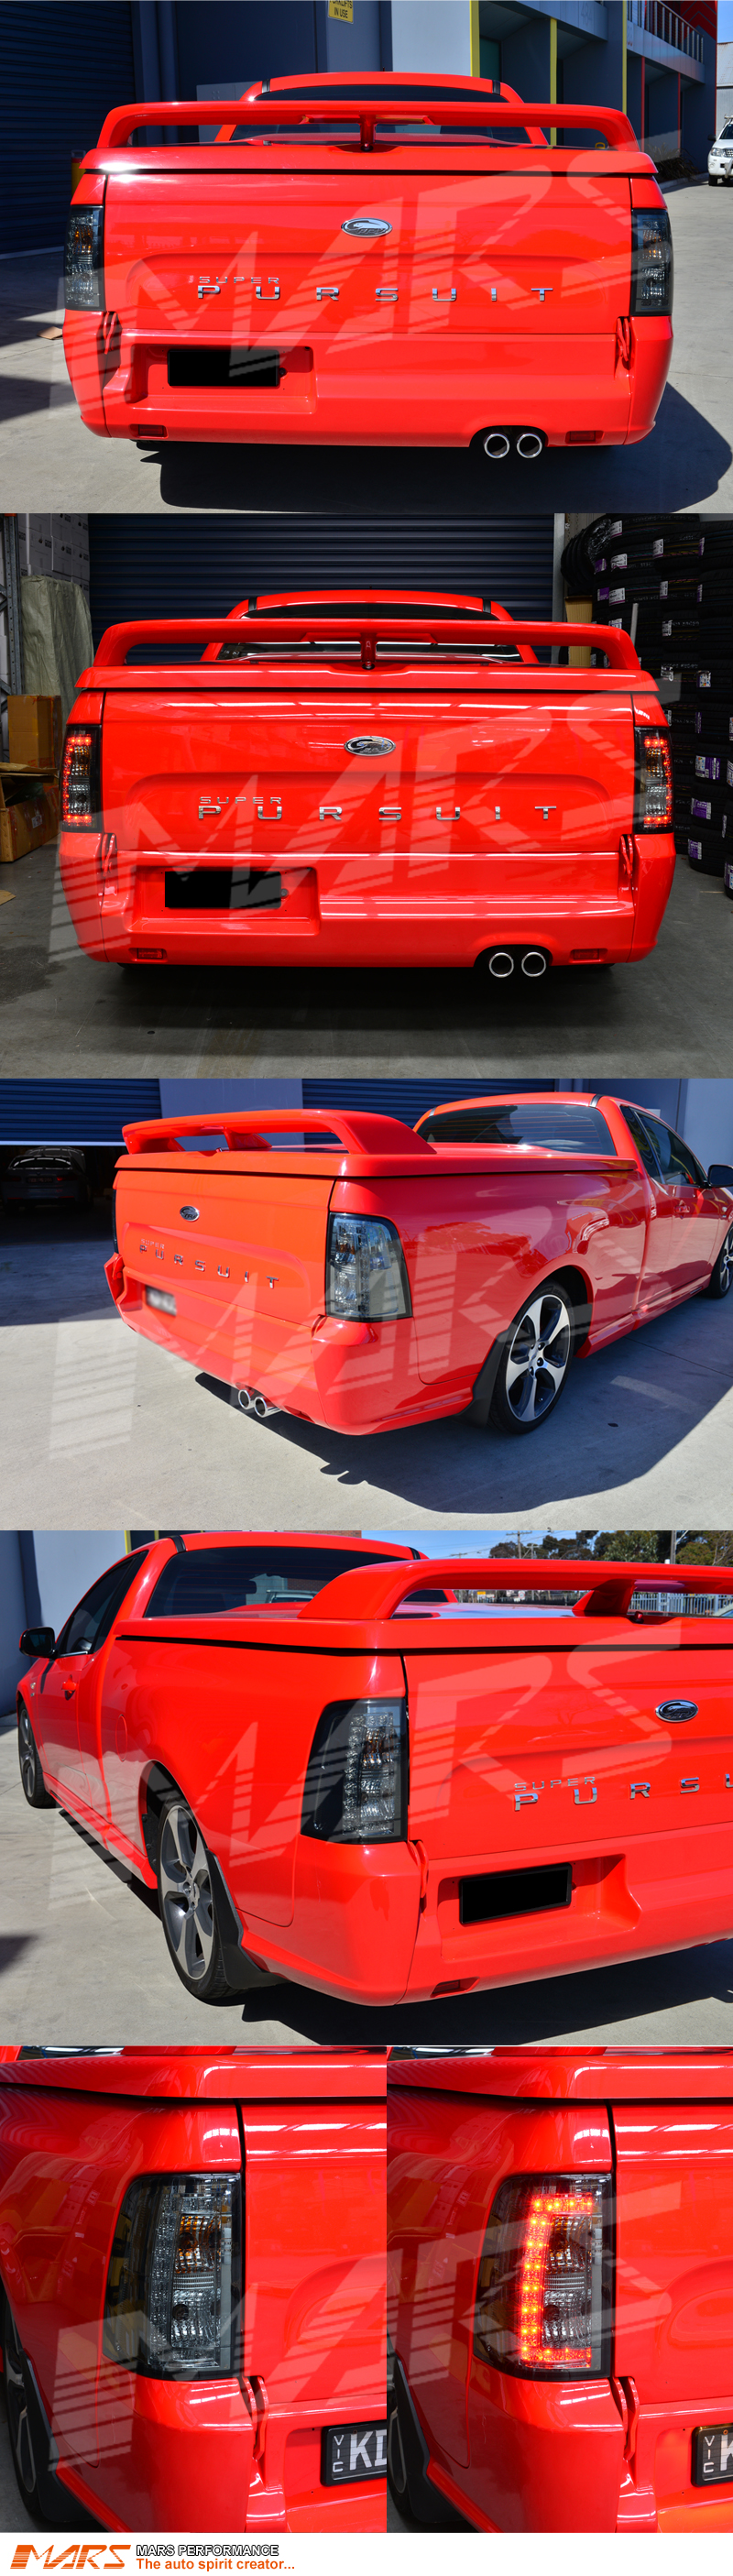 Full Smoked Led Tail Lights For Ford Falcon Fg Ute Xr6 Xr8